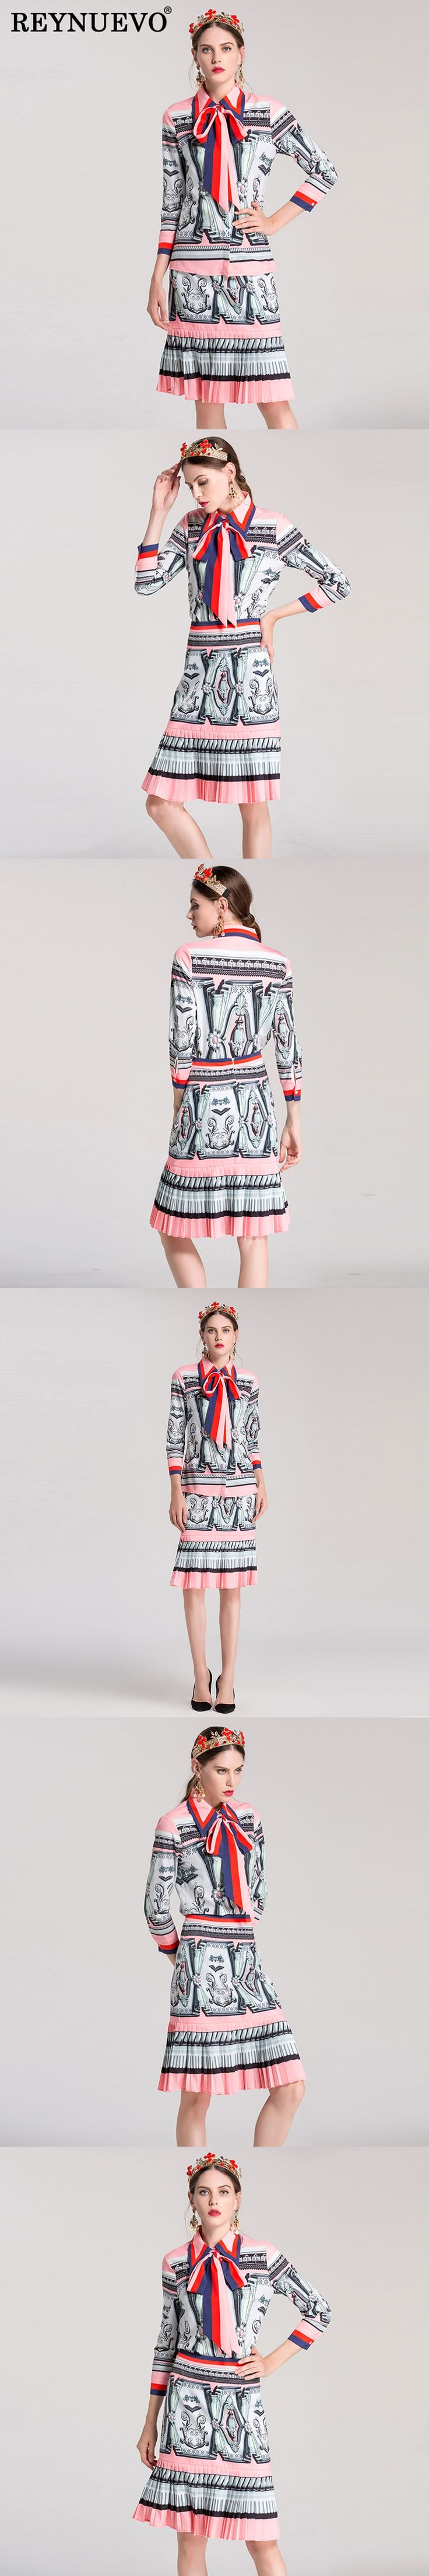 New Patchwork Print 2 Pieces Fashion Autumn Winter 2017 Turn-down Collar Full Sleeve Women Shirt + Pleated Pretty Skirt Sets